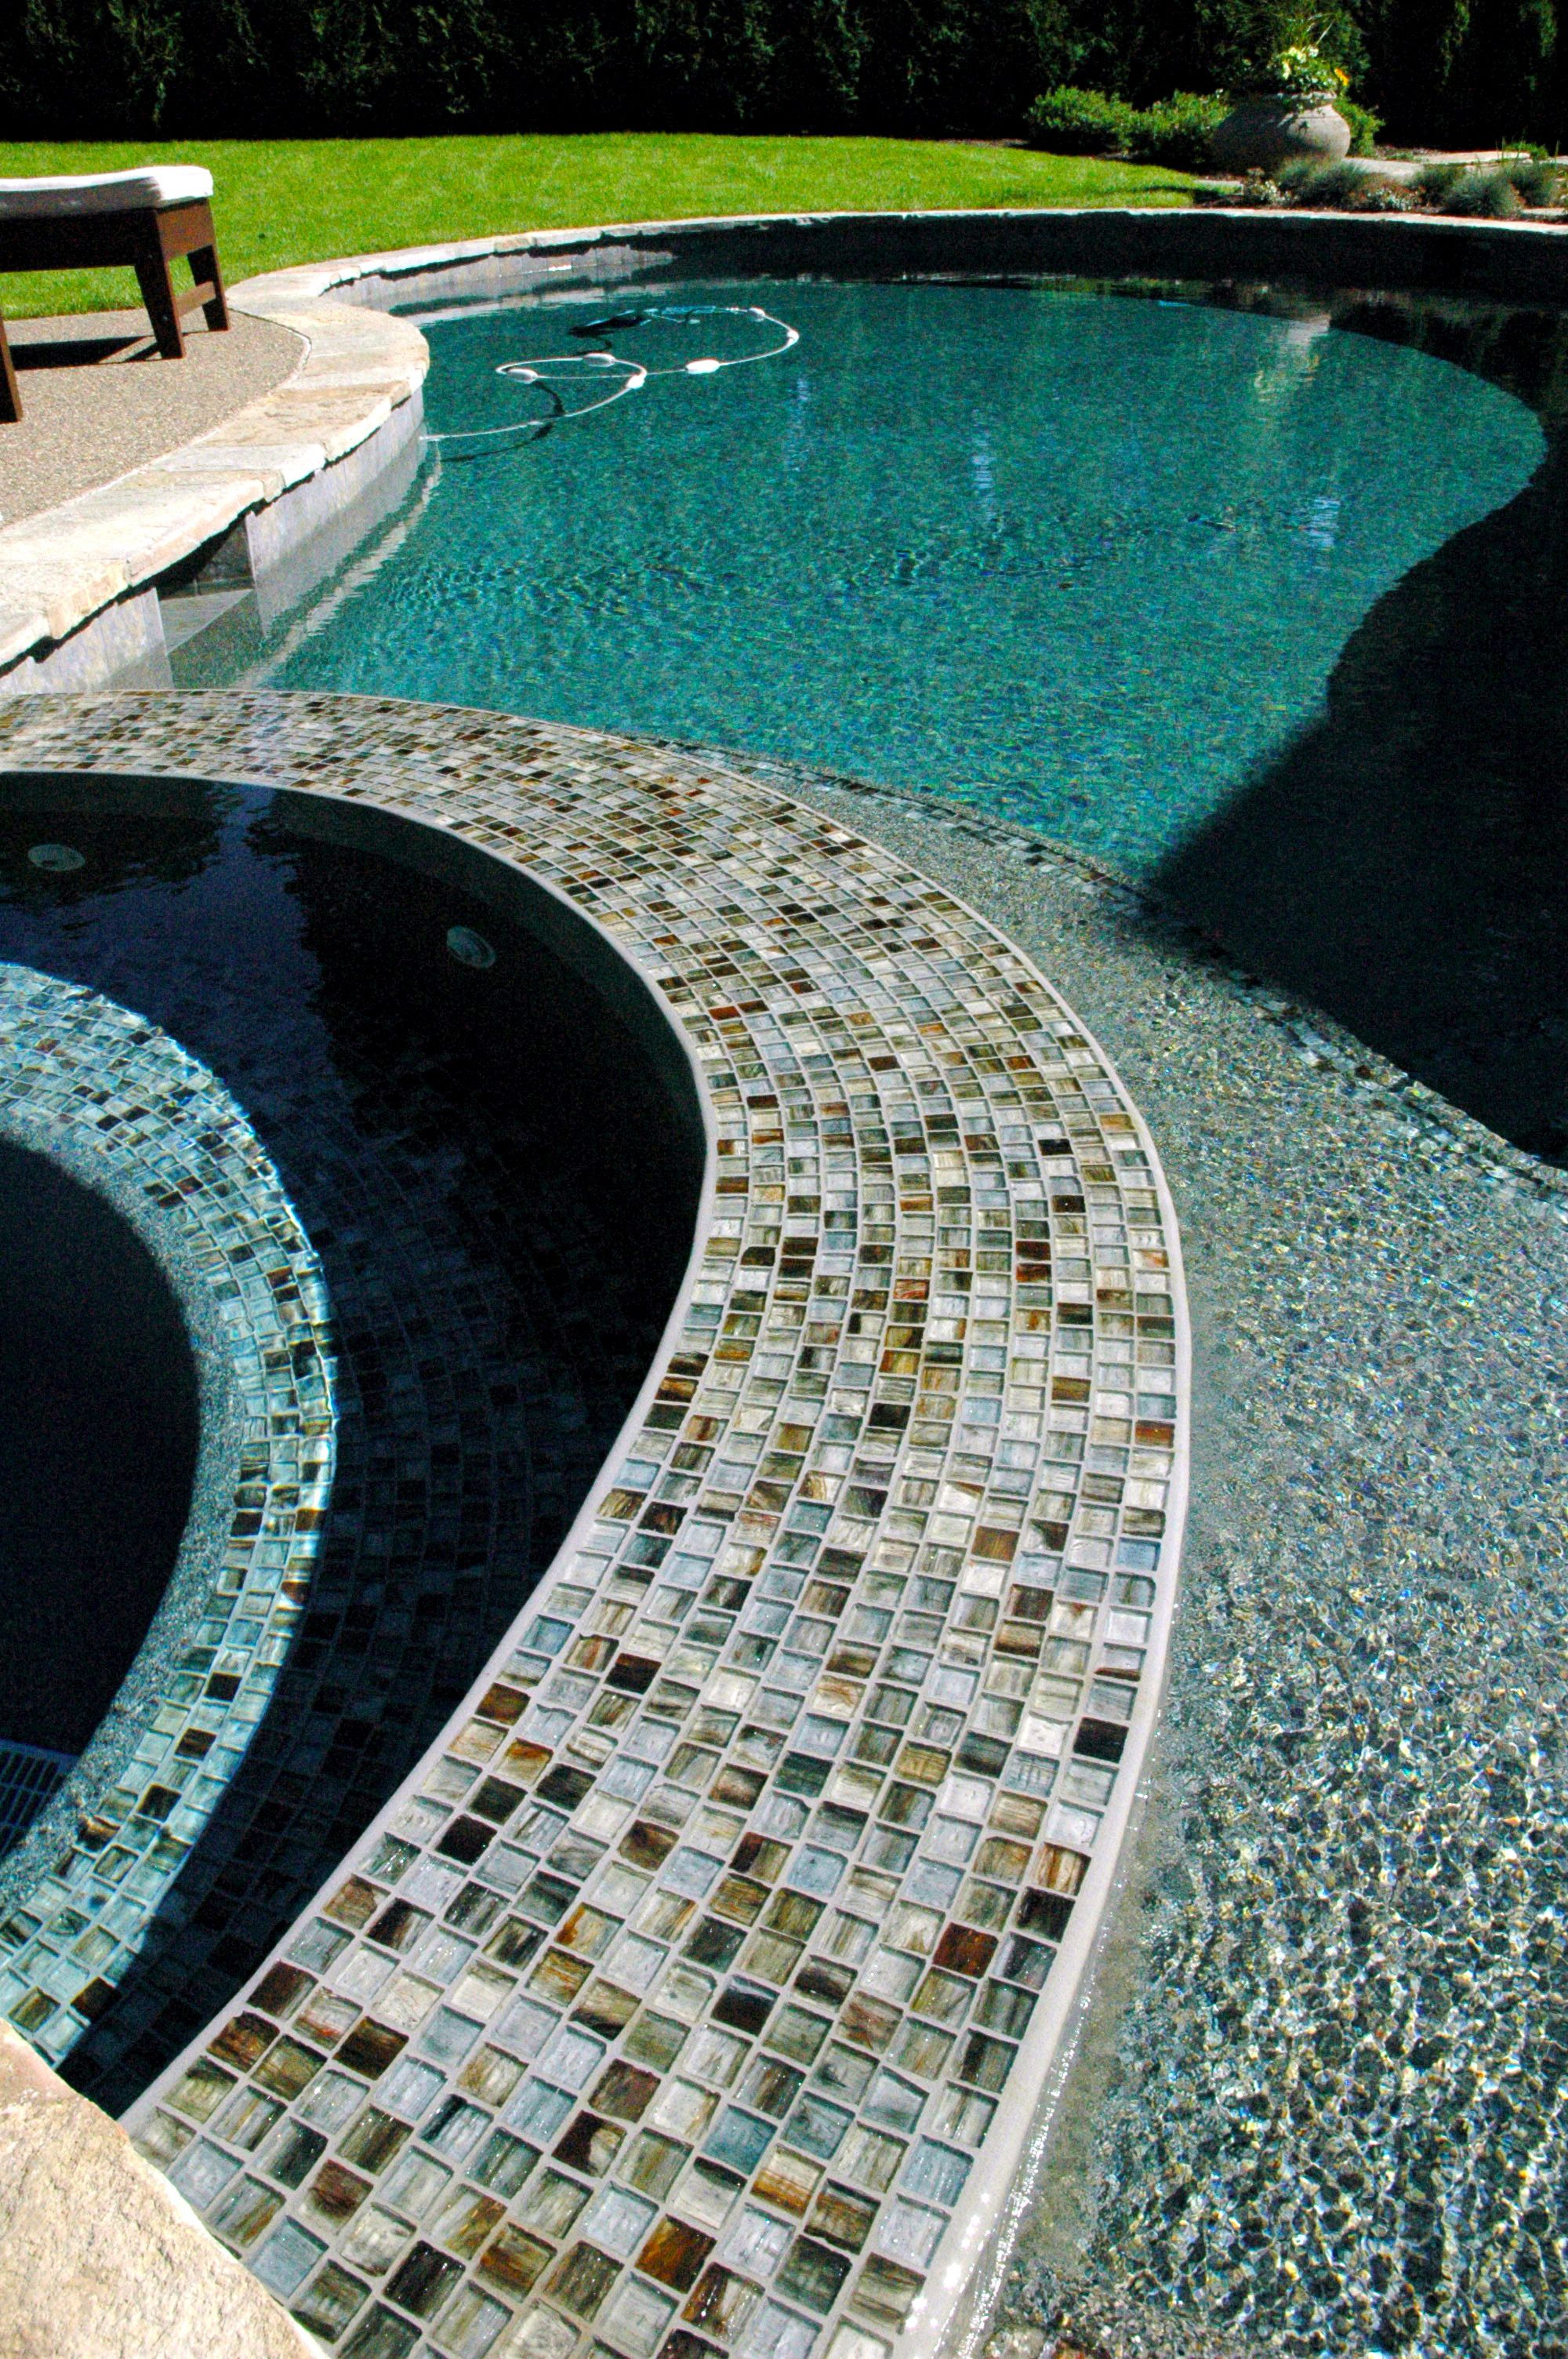 Design Your Dream Pool With Glass Tile Today At Https Www